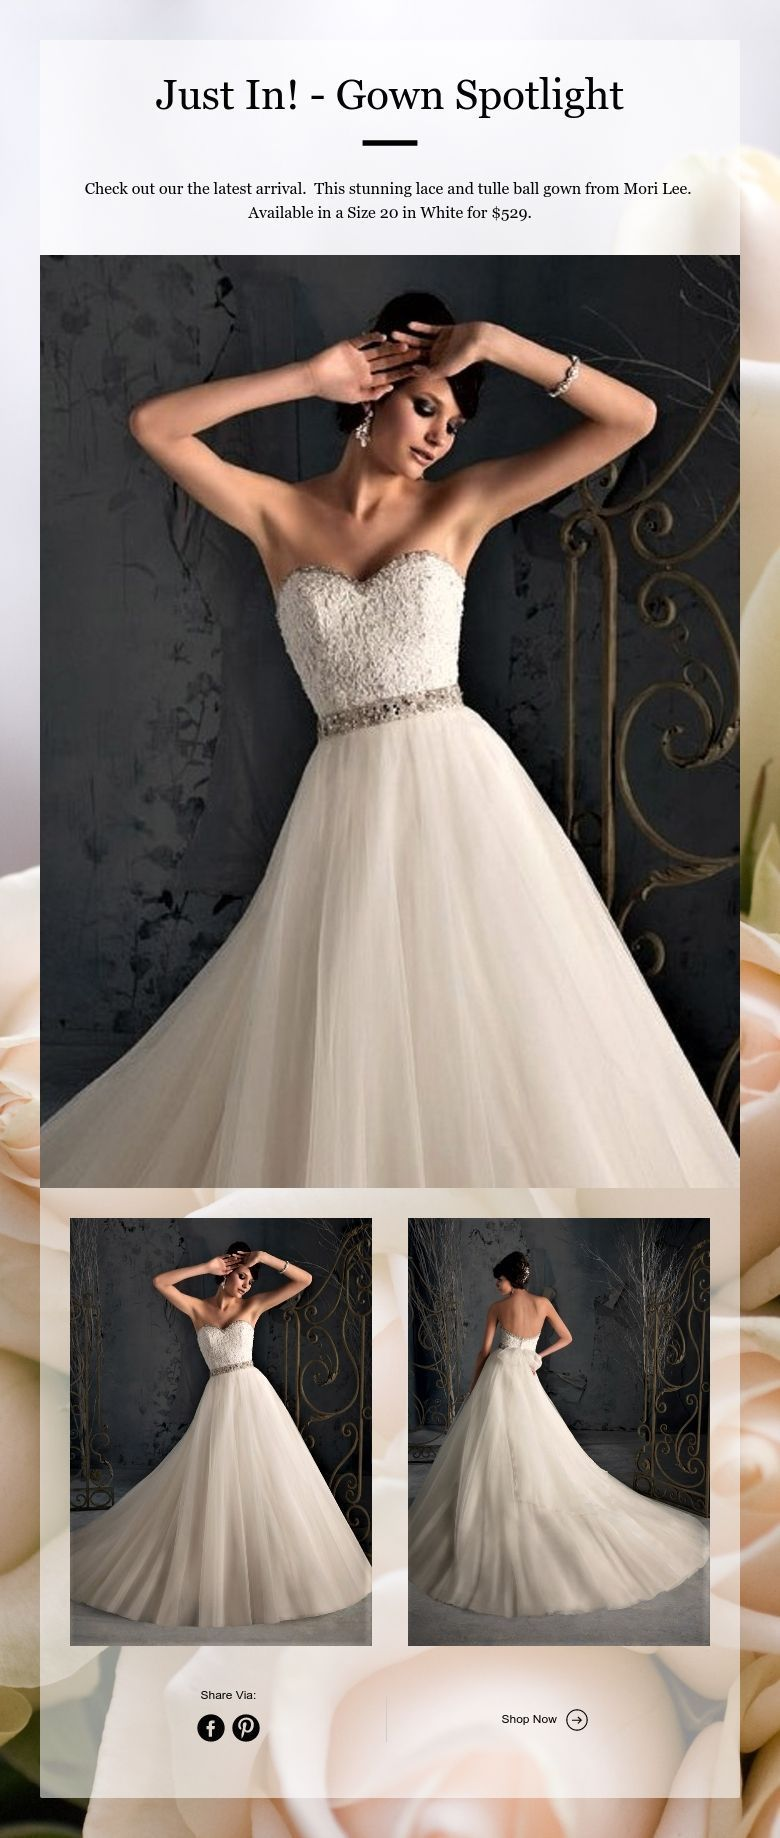 Just In! - Gown Spotlight - New, Never Worn or Altered wedding gowns ...